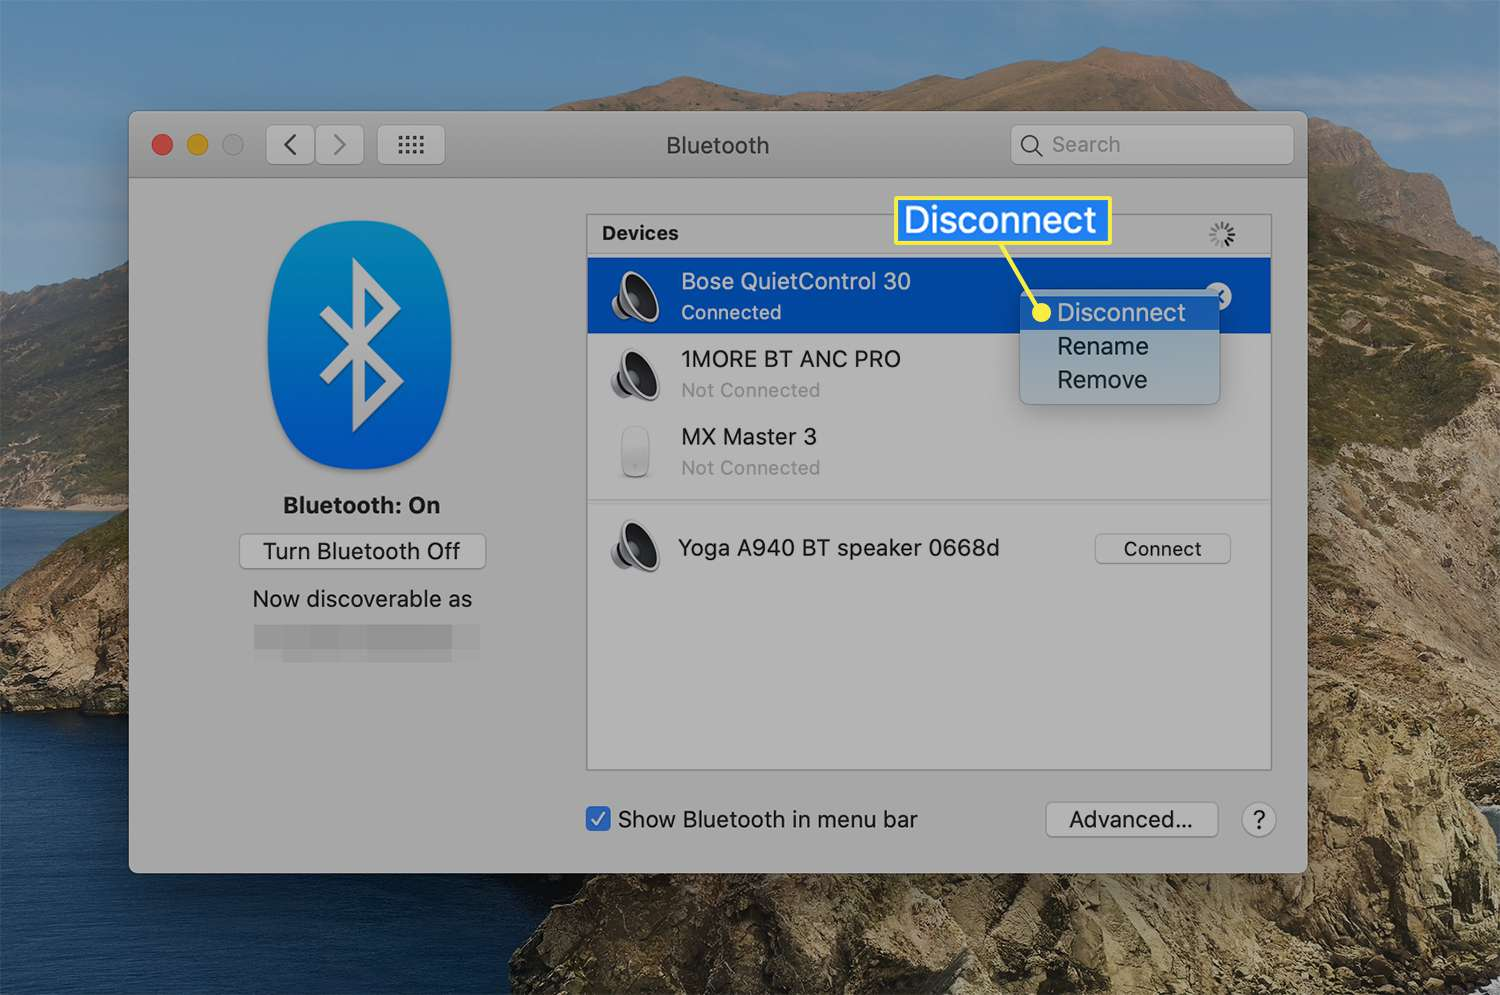 Disconnect option from a connected Bluetooth device on macOS